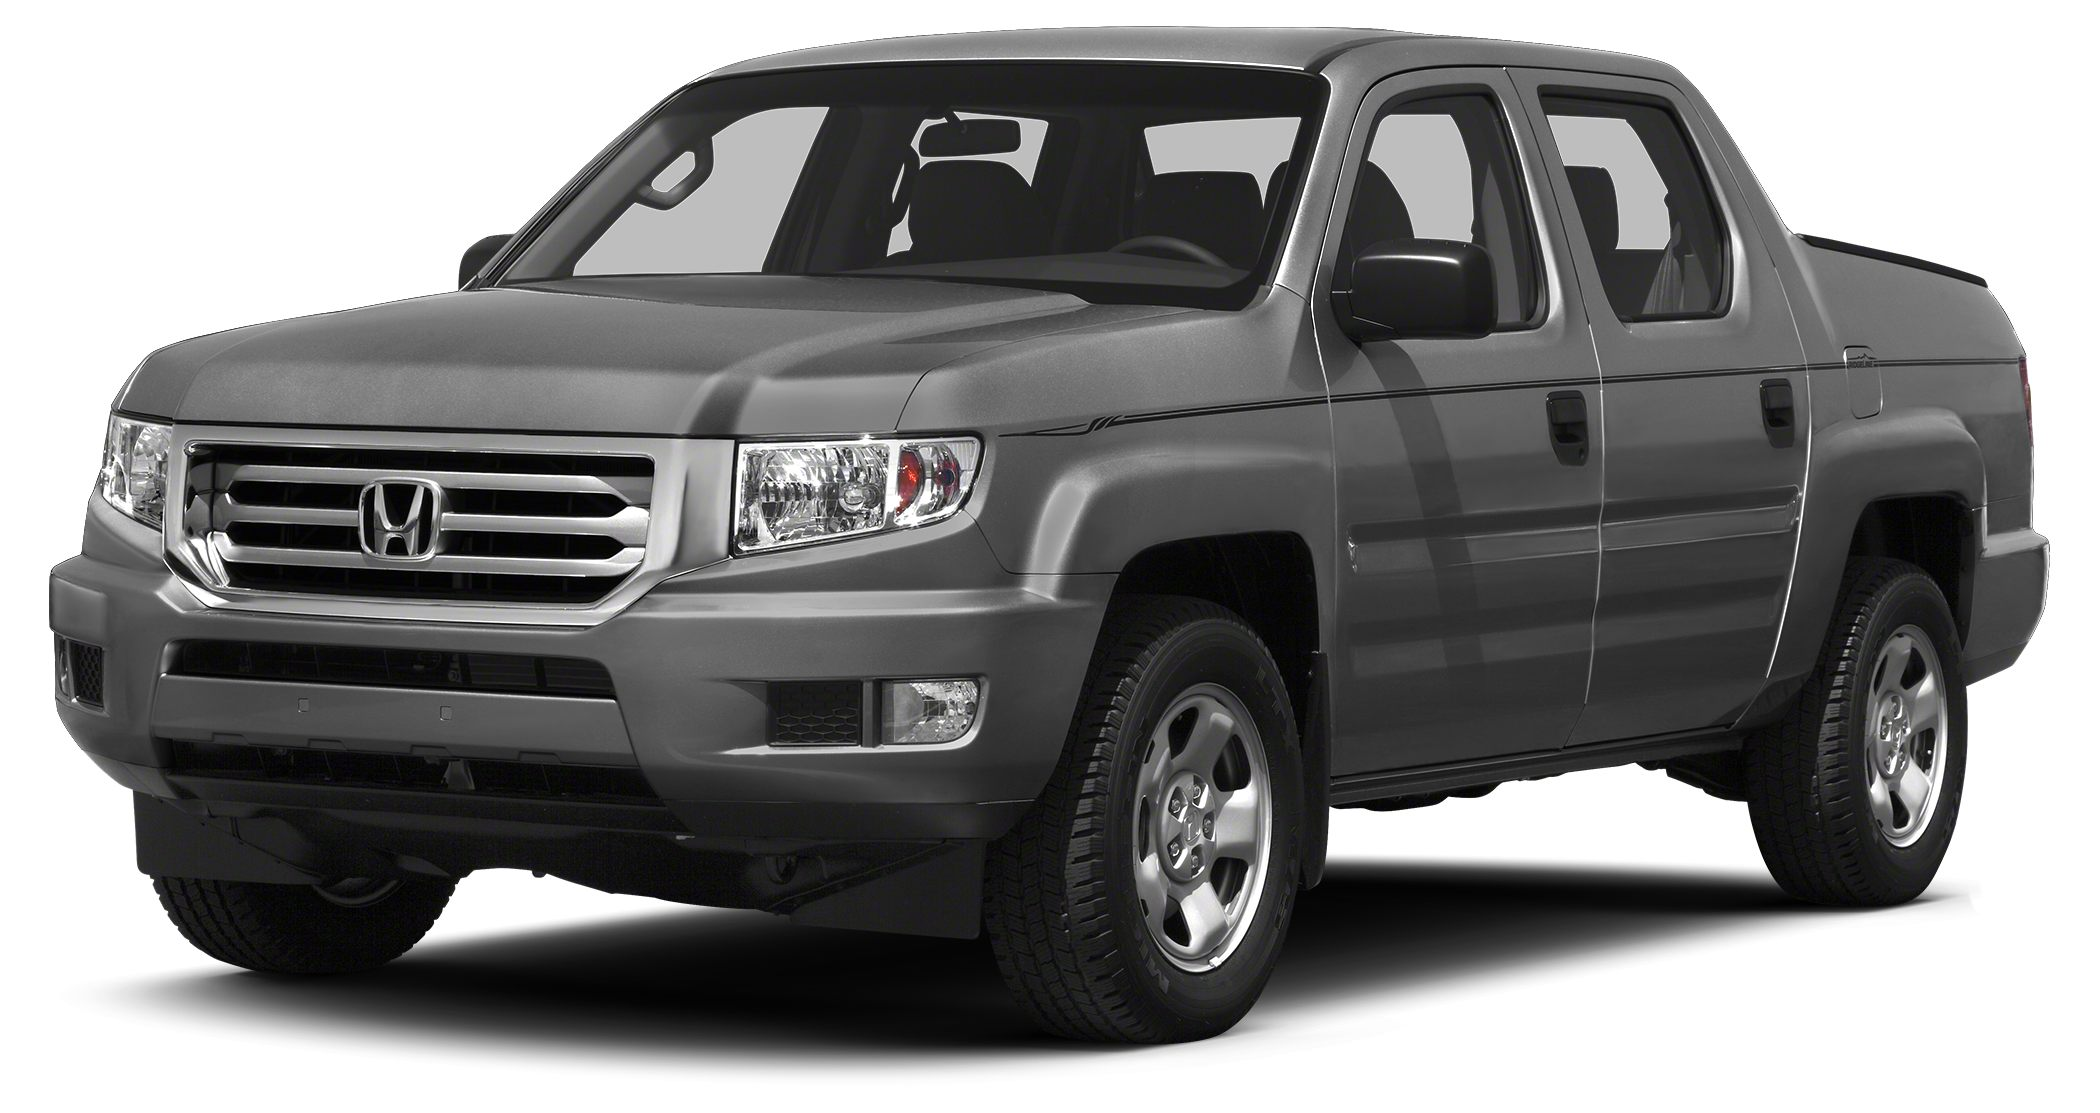 2013 Honda Ridgeline RTS Honda Certified Certified Rest easy in the comfortable seats So quiet